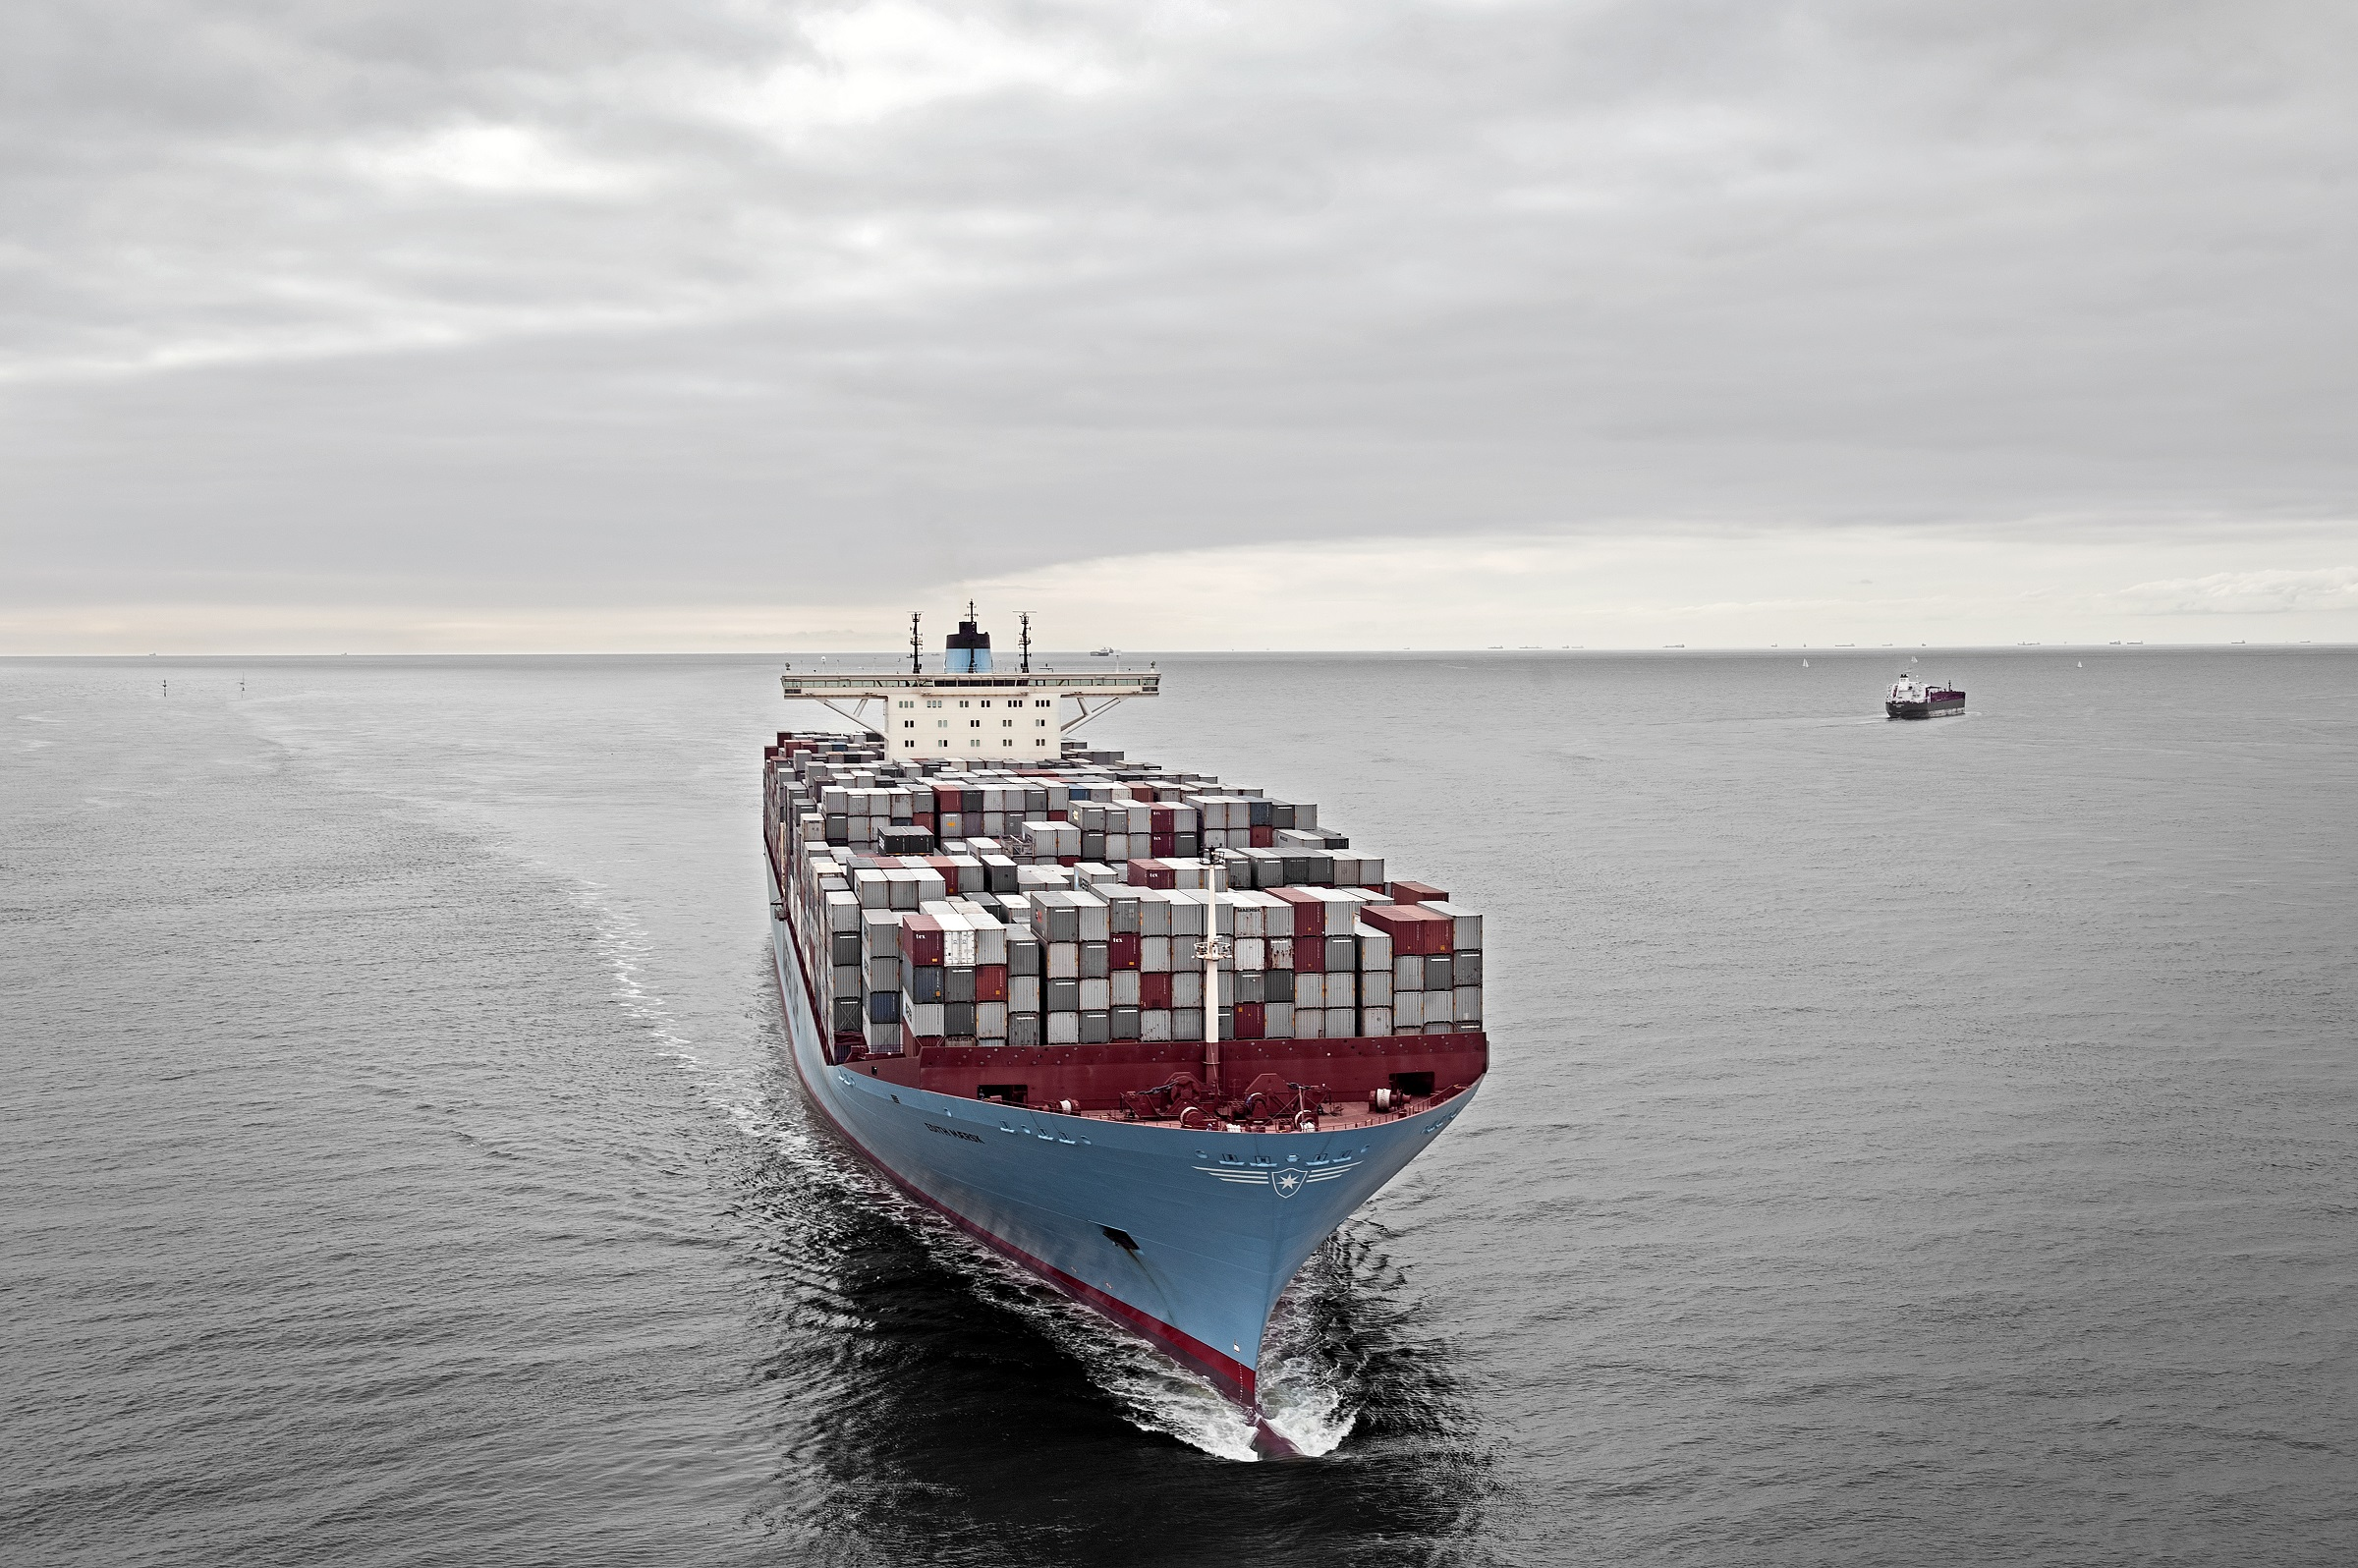 MAERSK LINE containership5 BIG